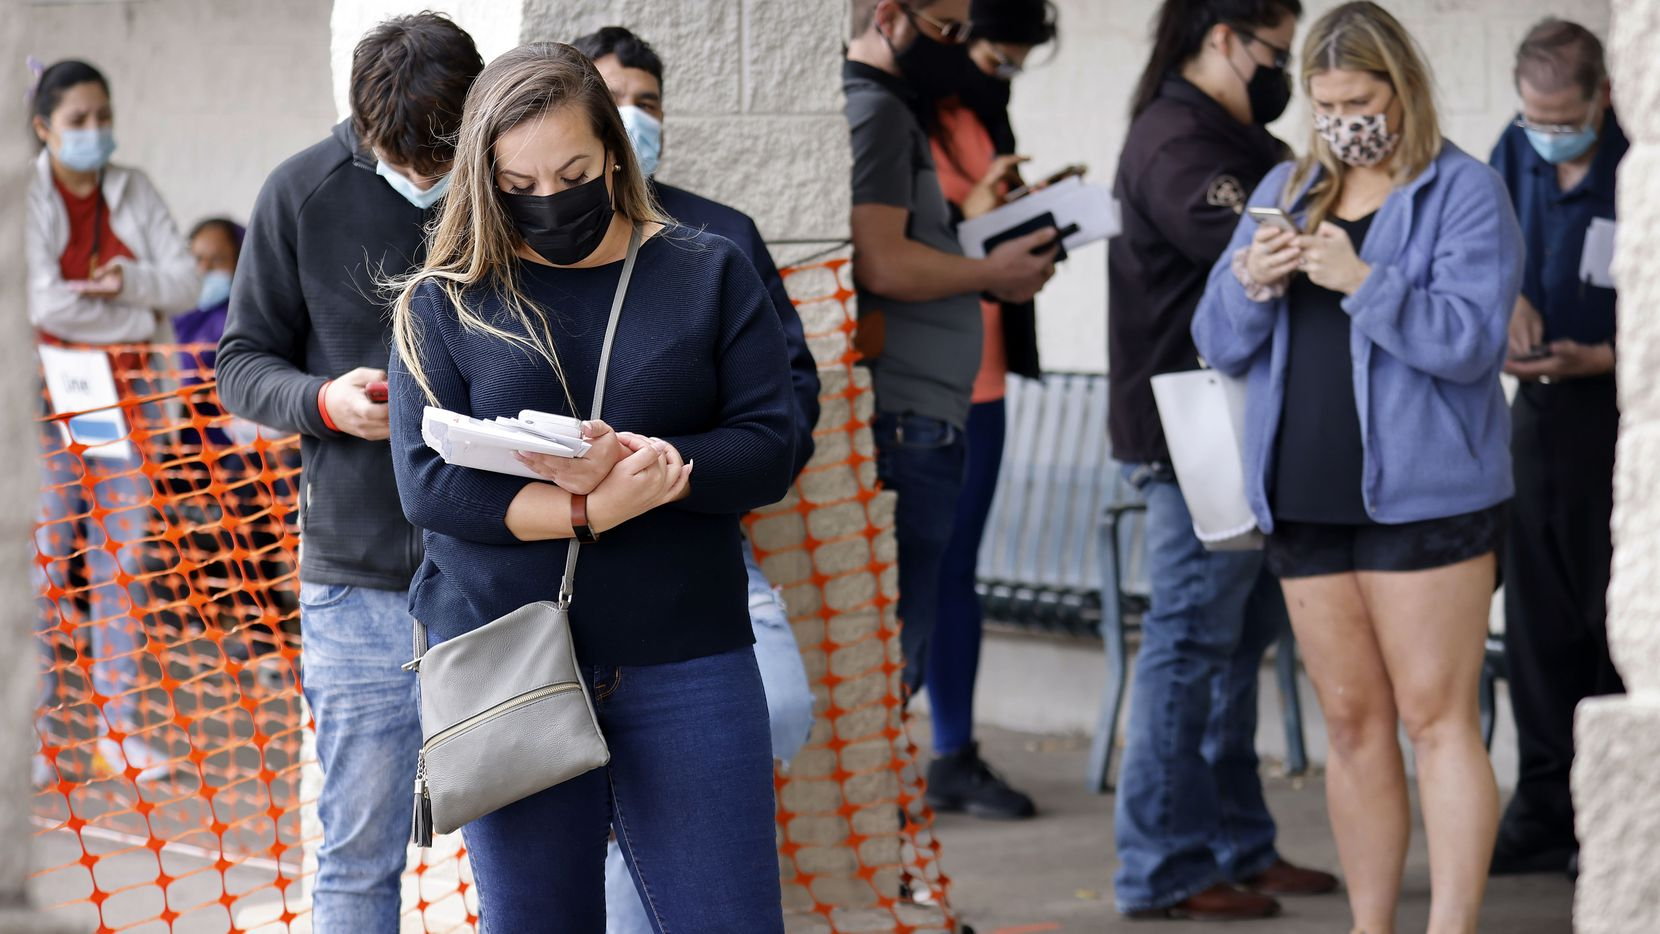 People wearing masks wait in line outside the Texas Department of Public Safety Drivers License Center in Garland, Texas, March 10, the first day of Governor Greg Abbott's lifting of the mask mandate and other restrictions.